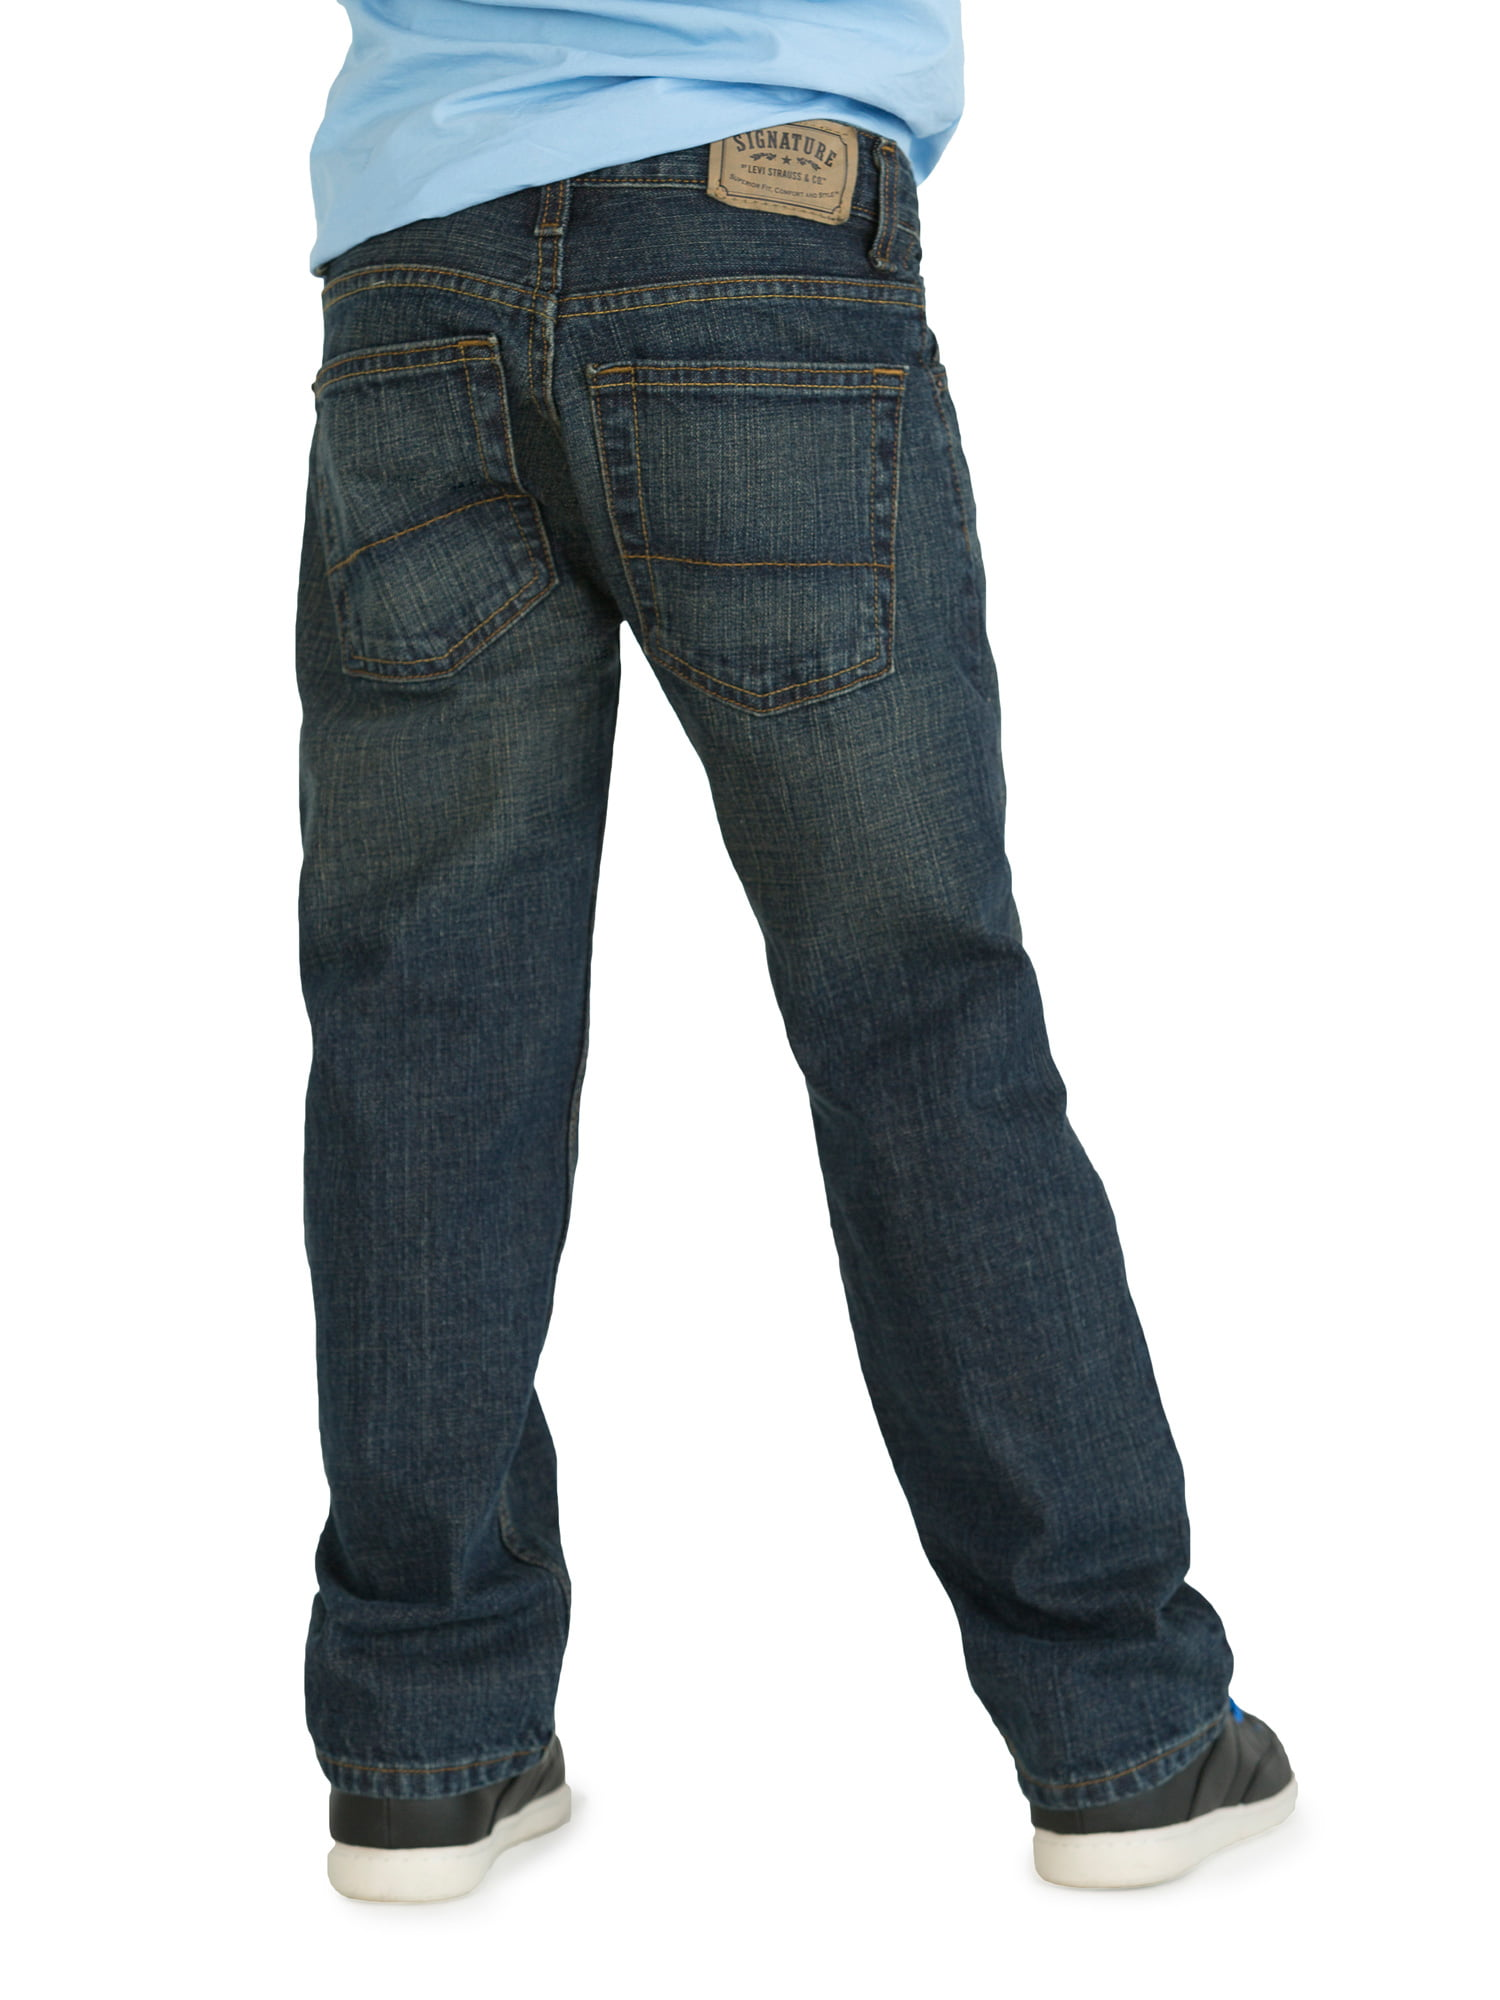 54a800f6770c9 Signature by Levi Strauss   Co. Boys  Straight Fit Jeans - Walmart.com